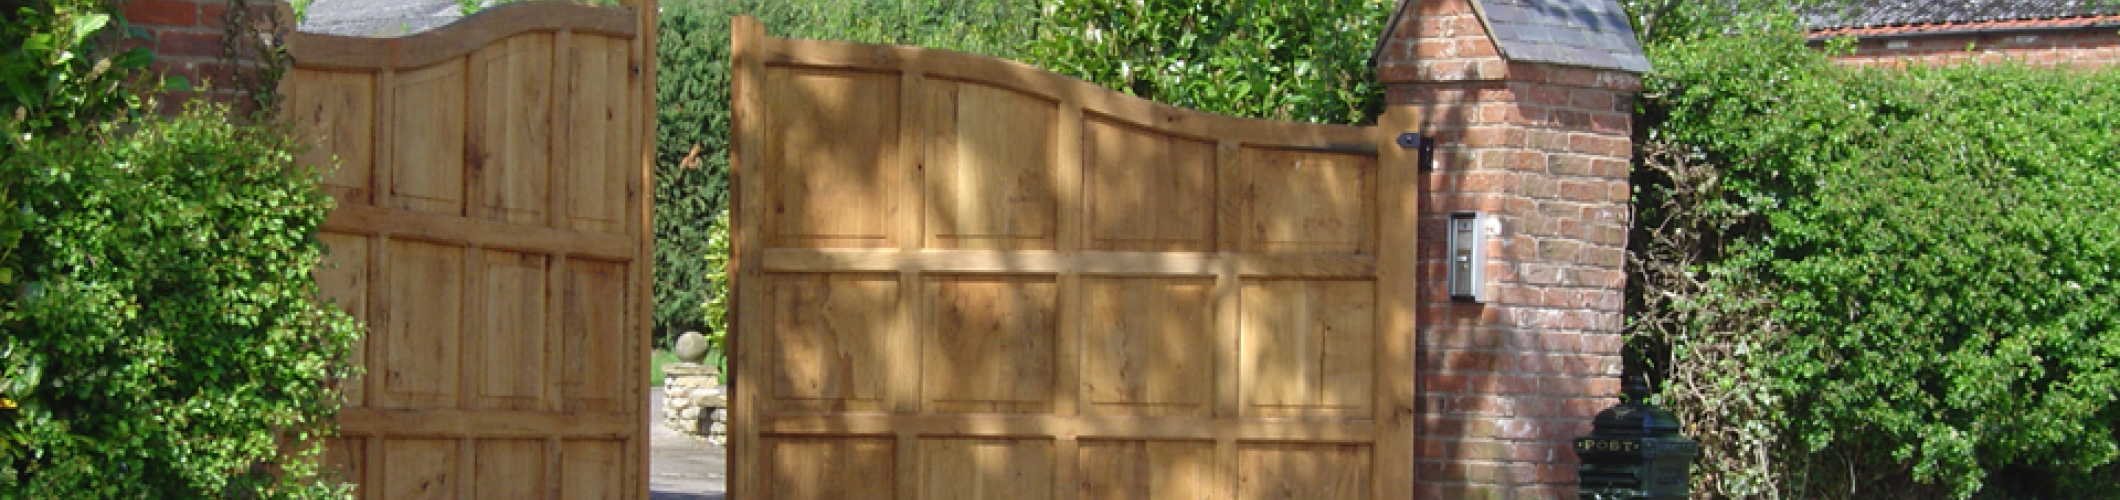 Wooden Gates Header